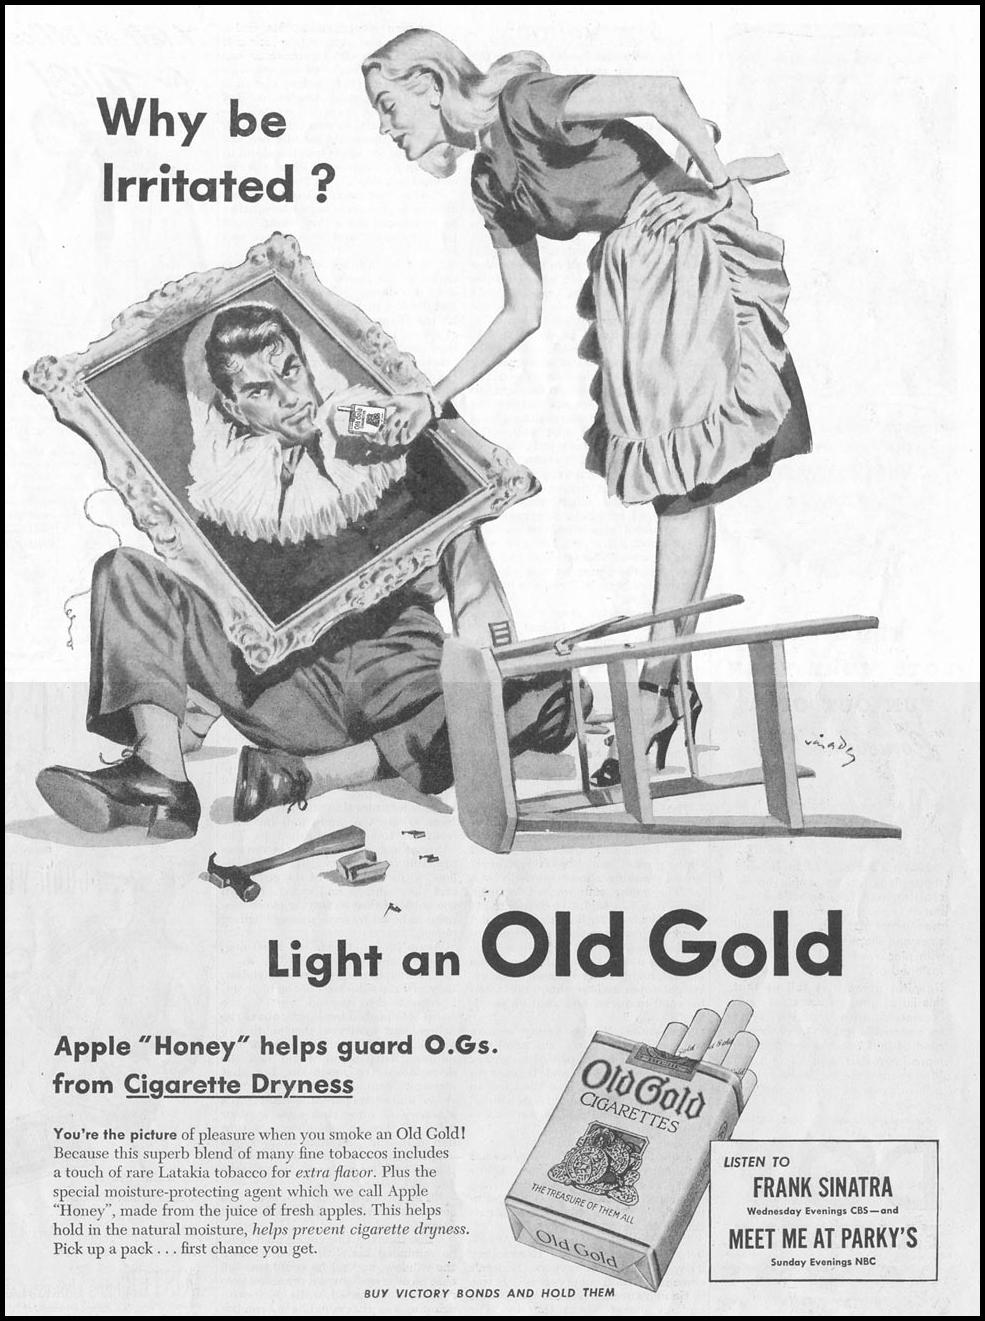 OLD GOLD CIGARETTES SATURDAY EVENING POST 10/06/1945 p. 45